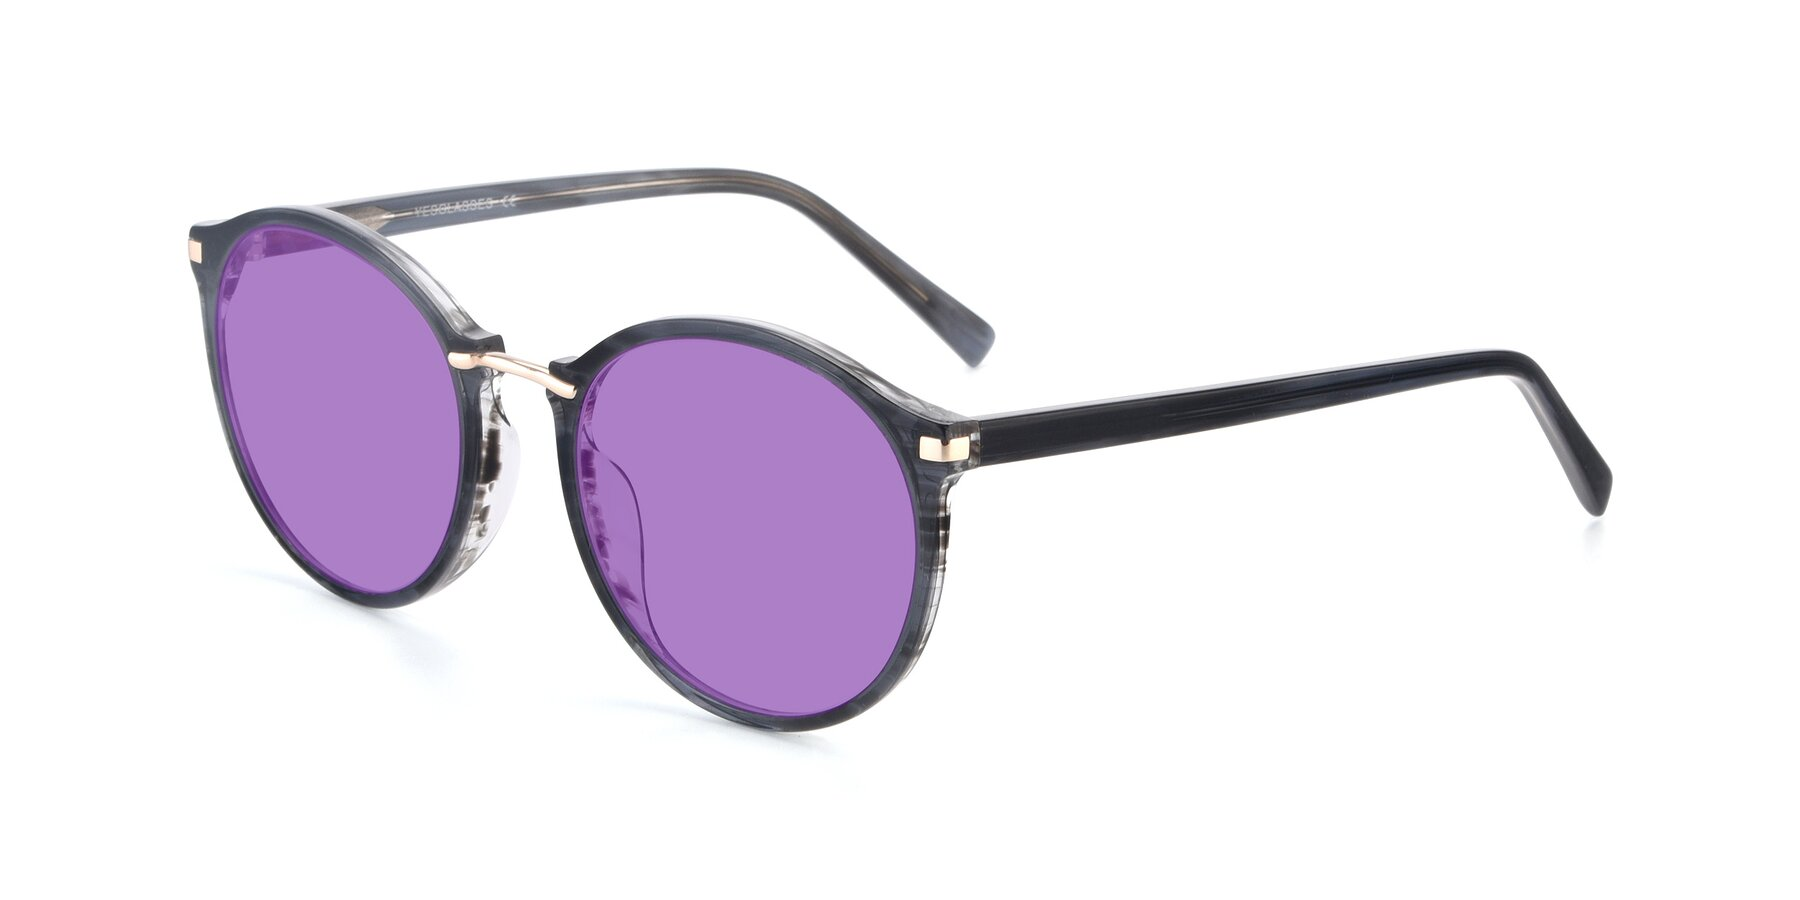 Angle of 17582 in Translucent Black with Medium Purple Tinted Lenses